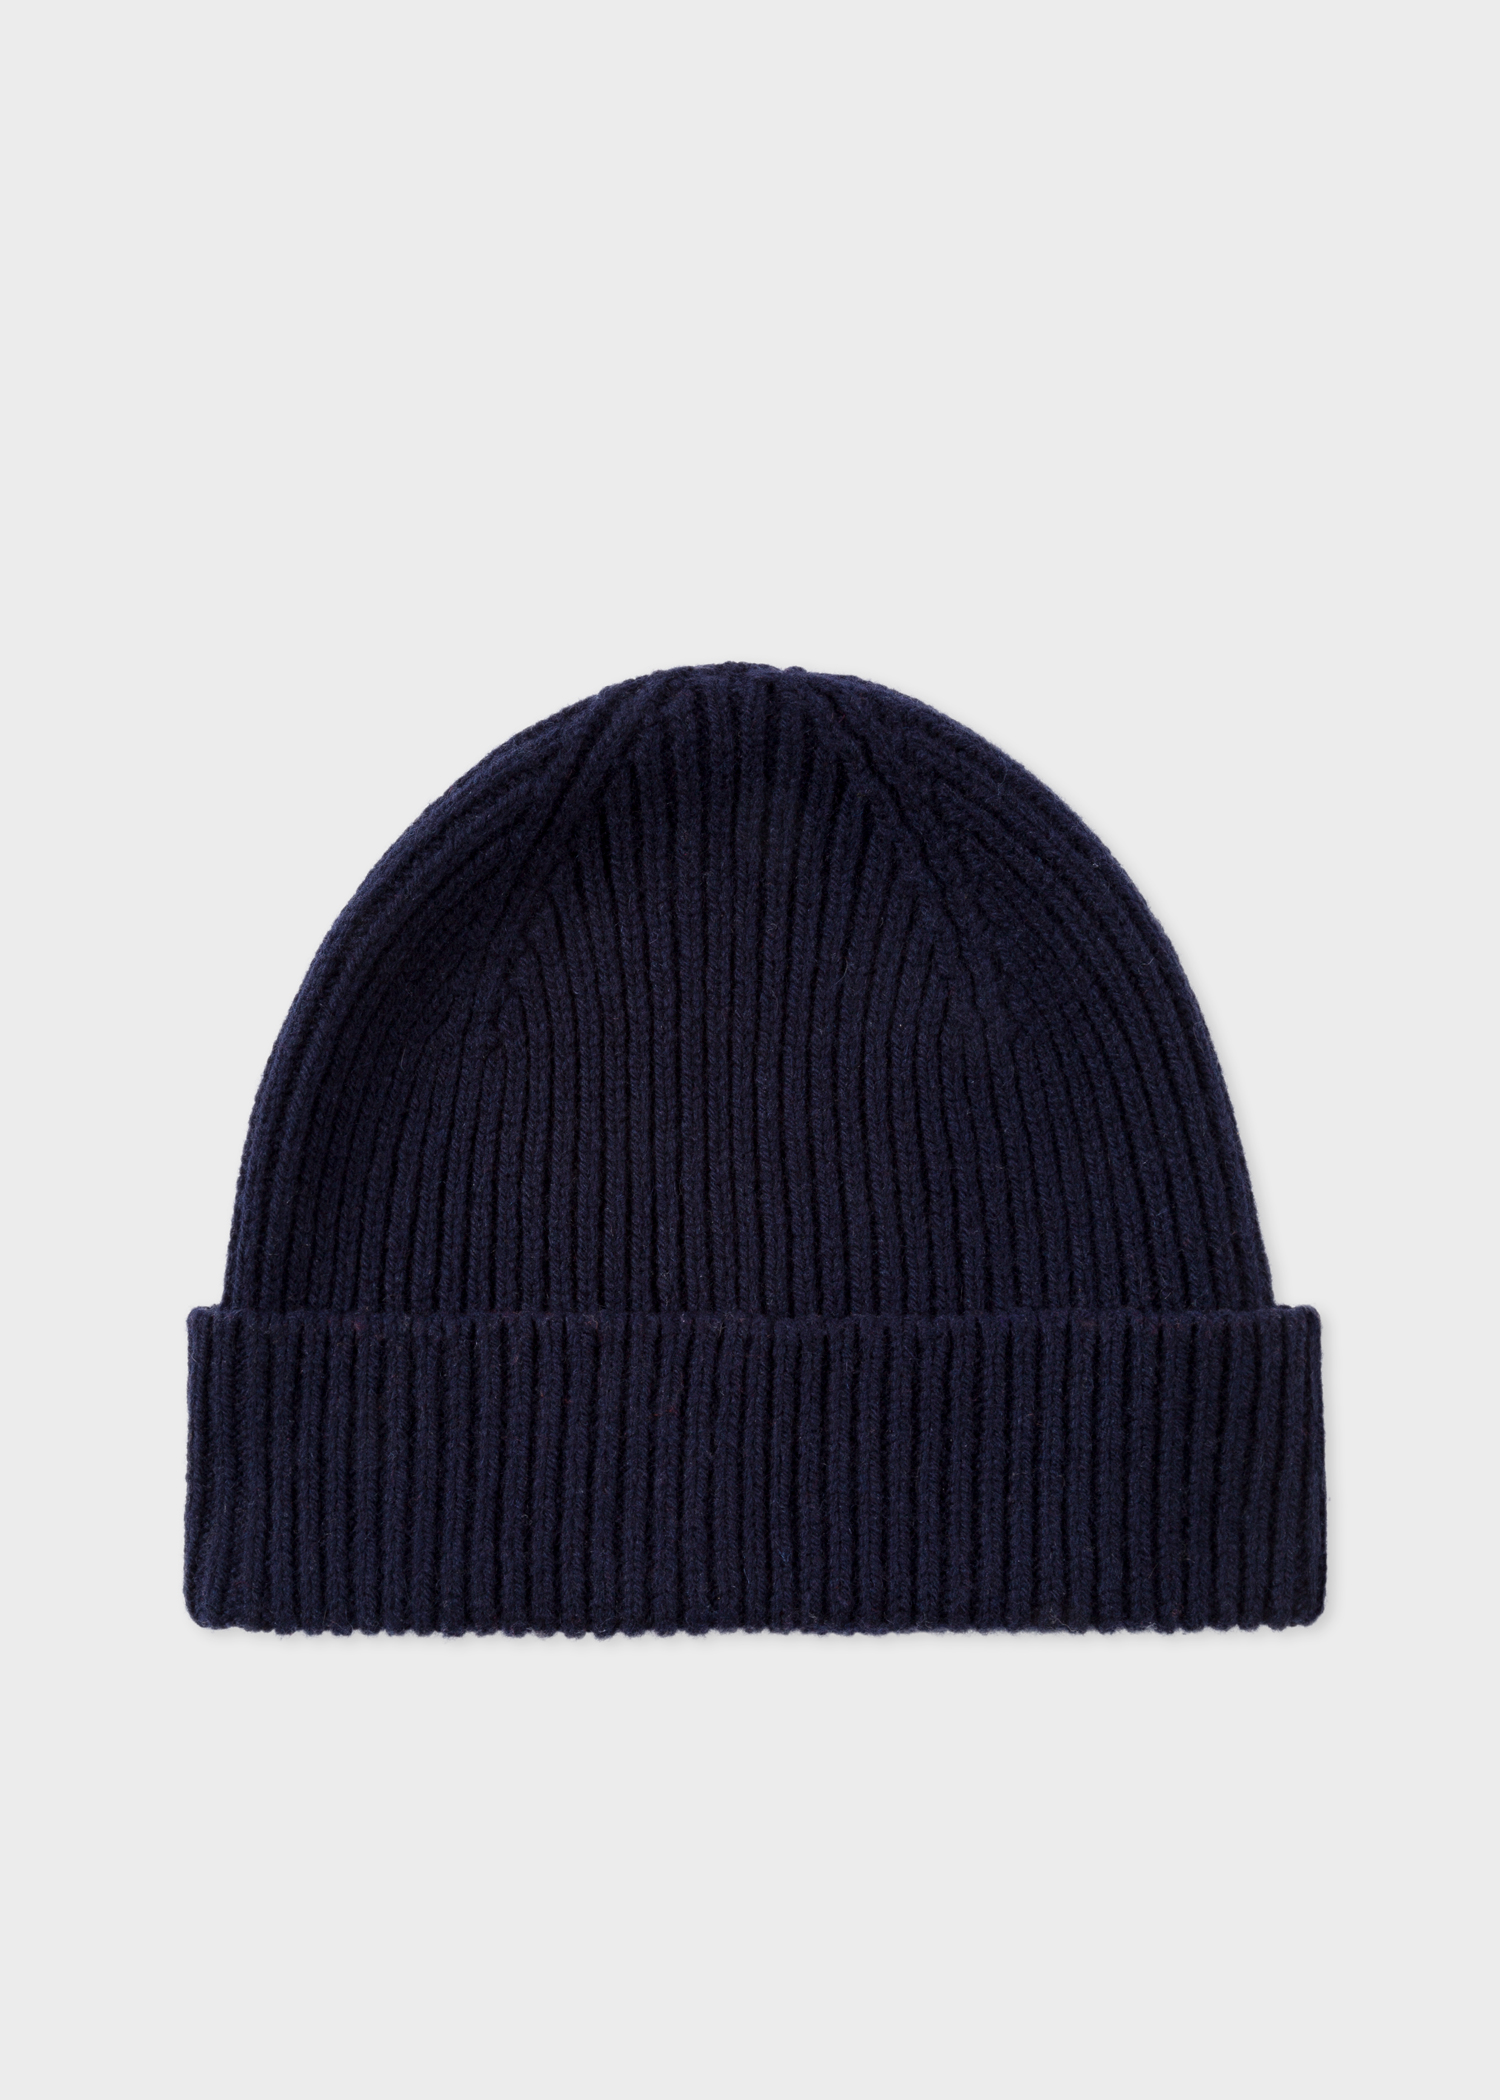 ce256030c08 Men s Navy Cashmere And Merino Wool Ribbed Beanie Hat - Paul Smith ...